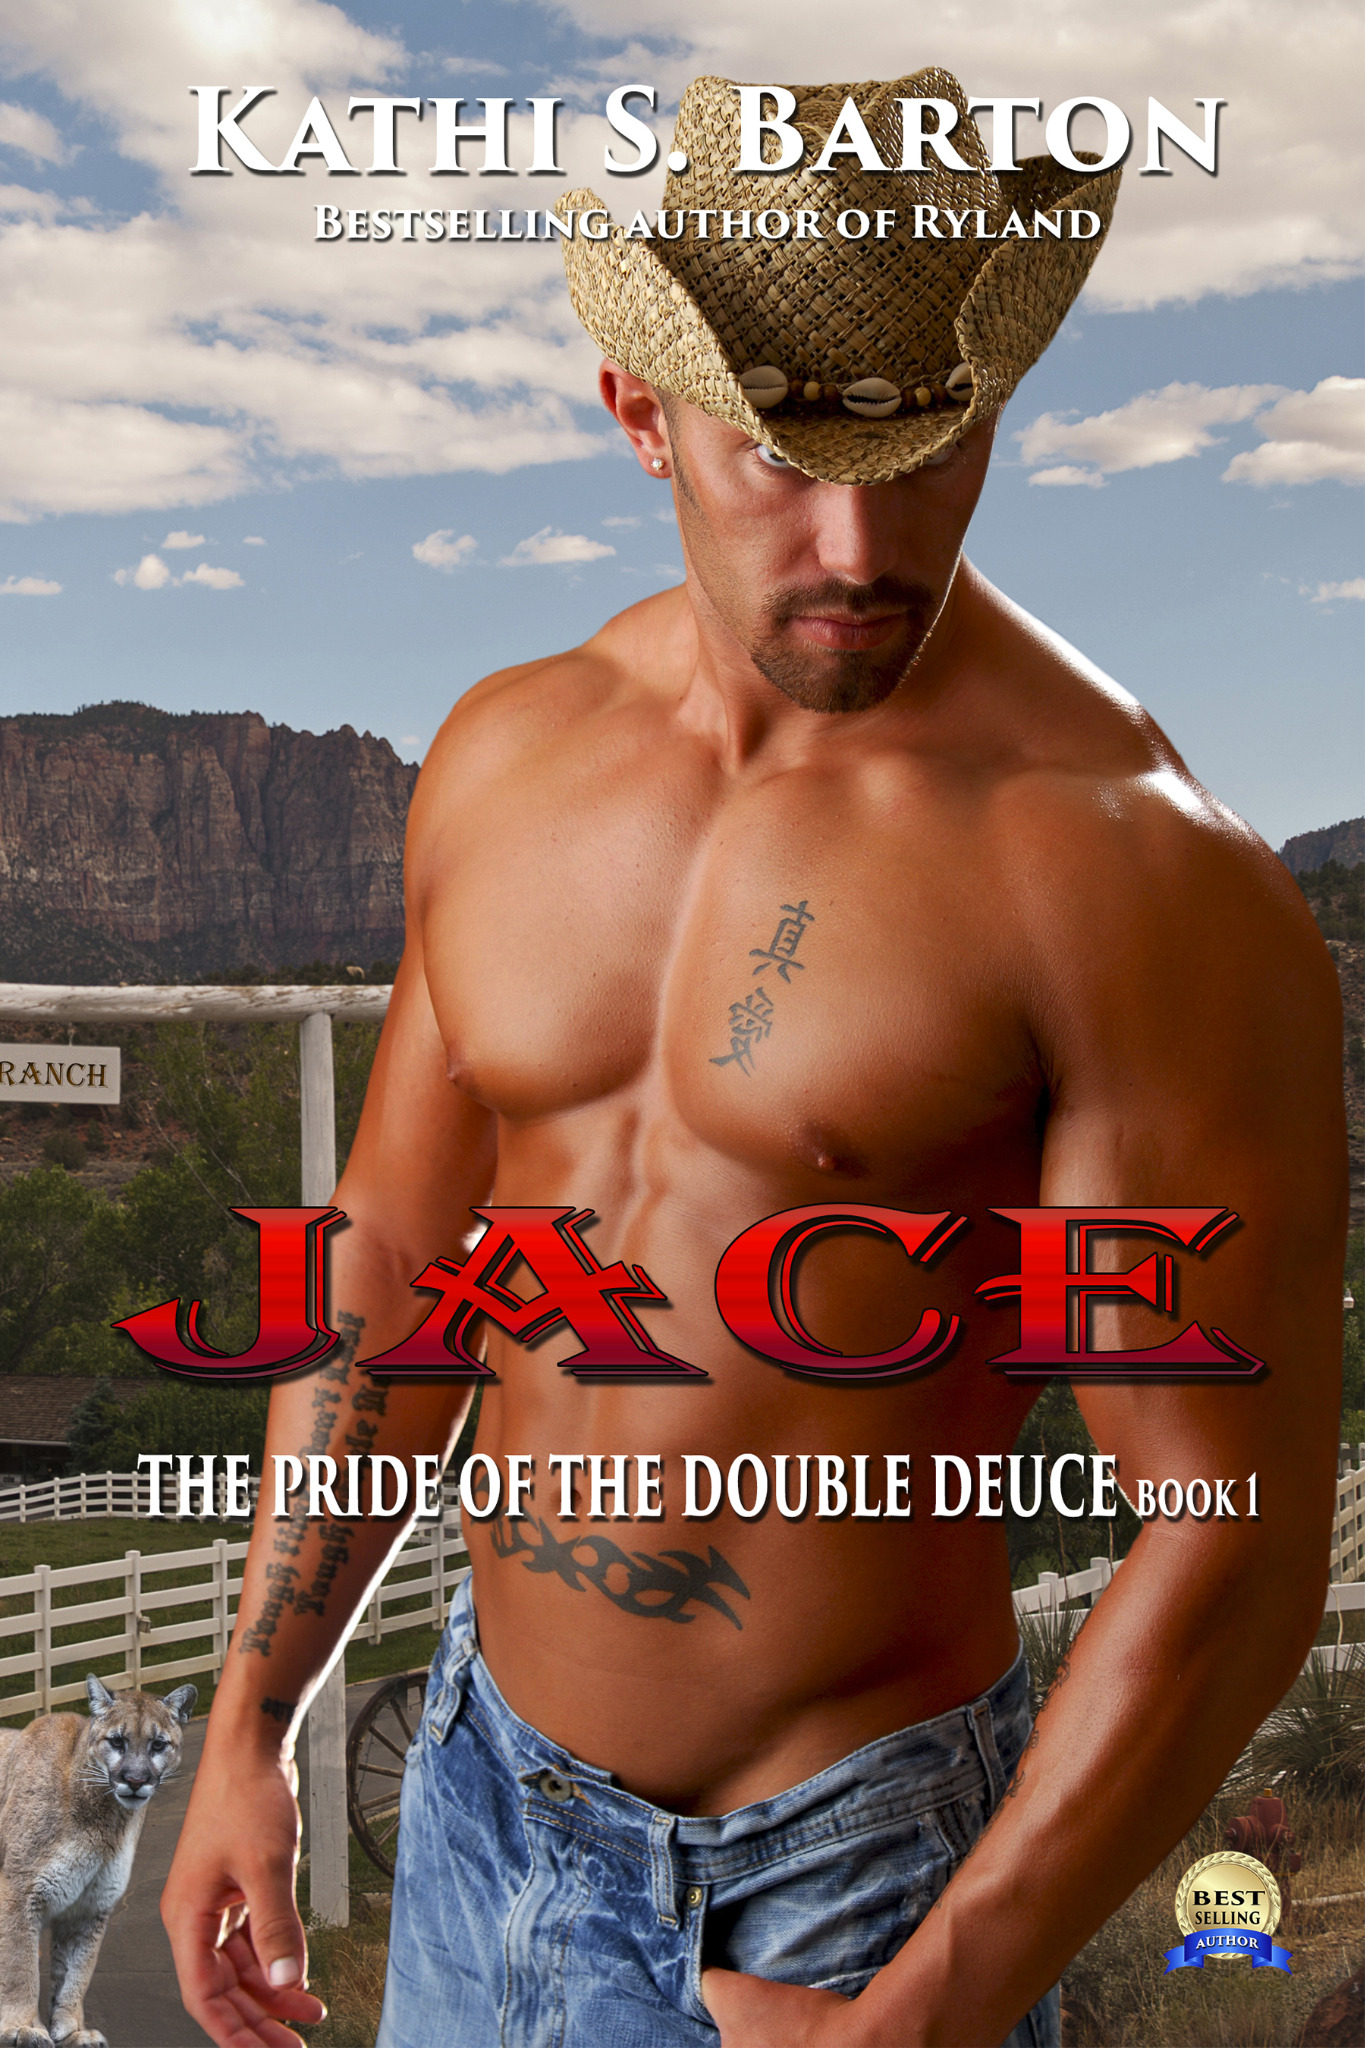 Jace - The Pride of the Double Deuce Book 1